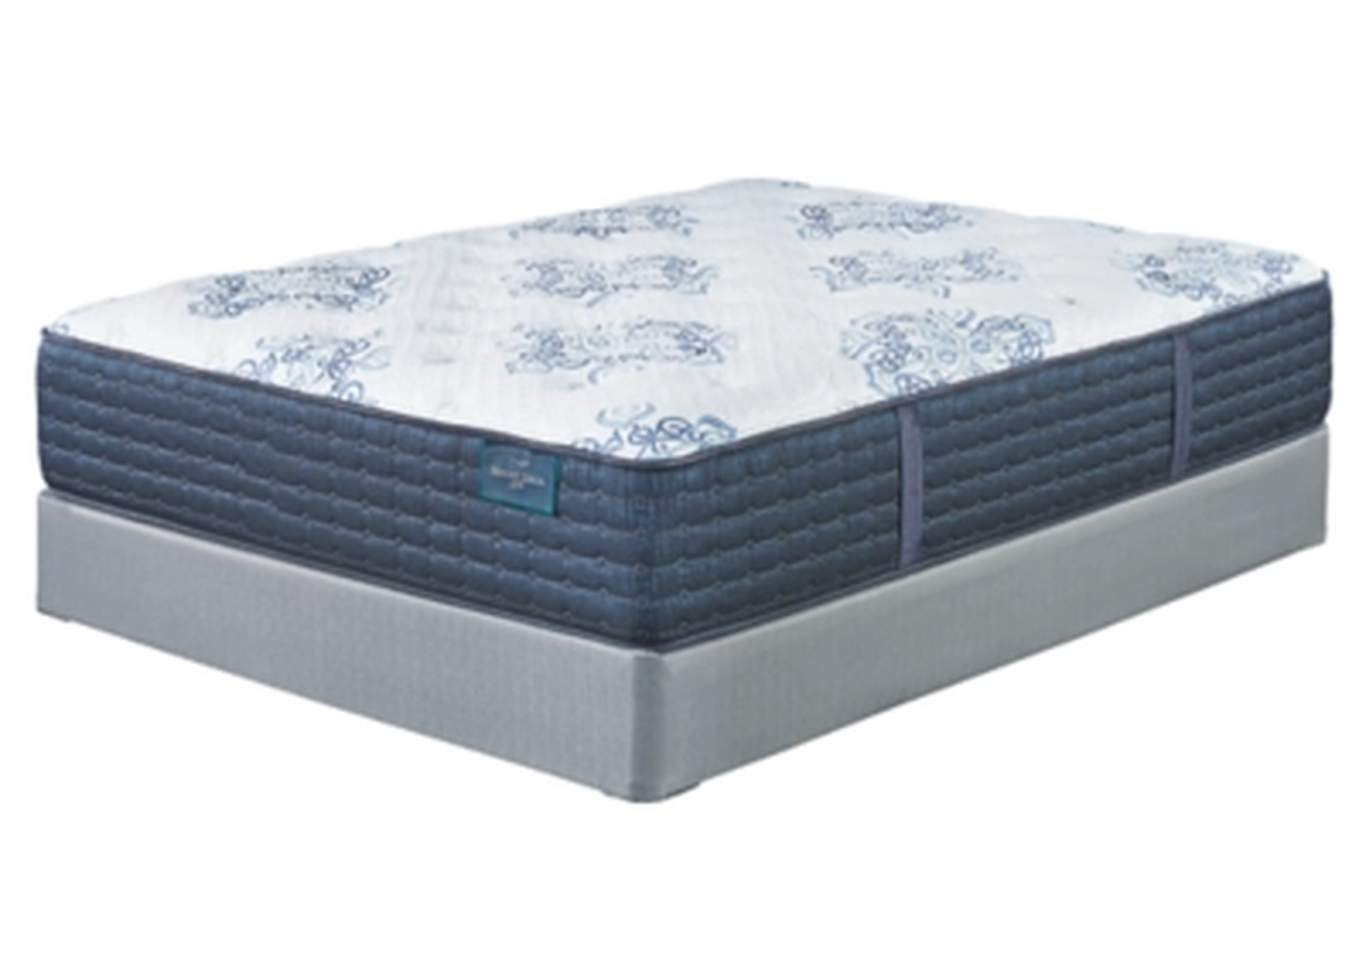 Mount Dana Firm White Queen Mattress,Sierra Sleep by Ashley